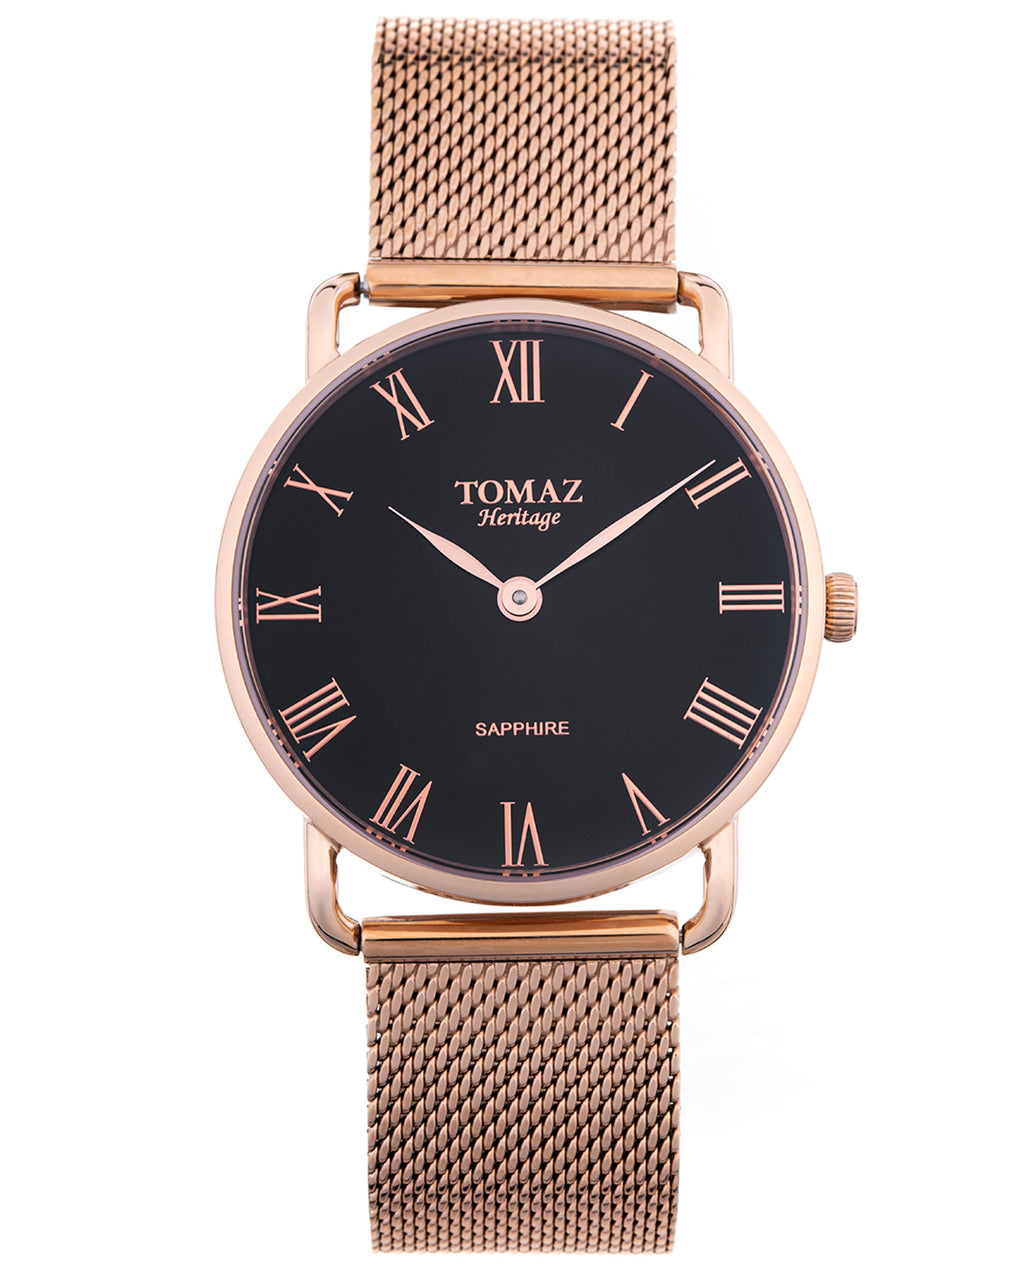 Tomaz Men's Watch G3M-D3 (Rose Gold Mesh)